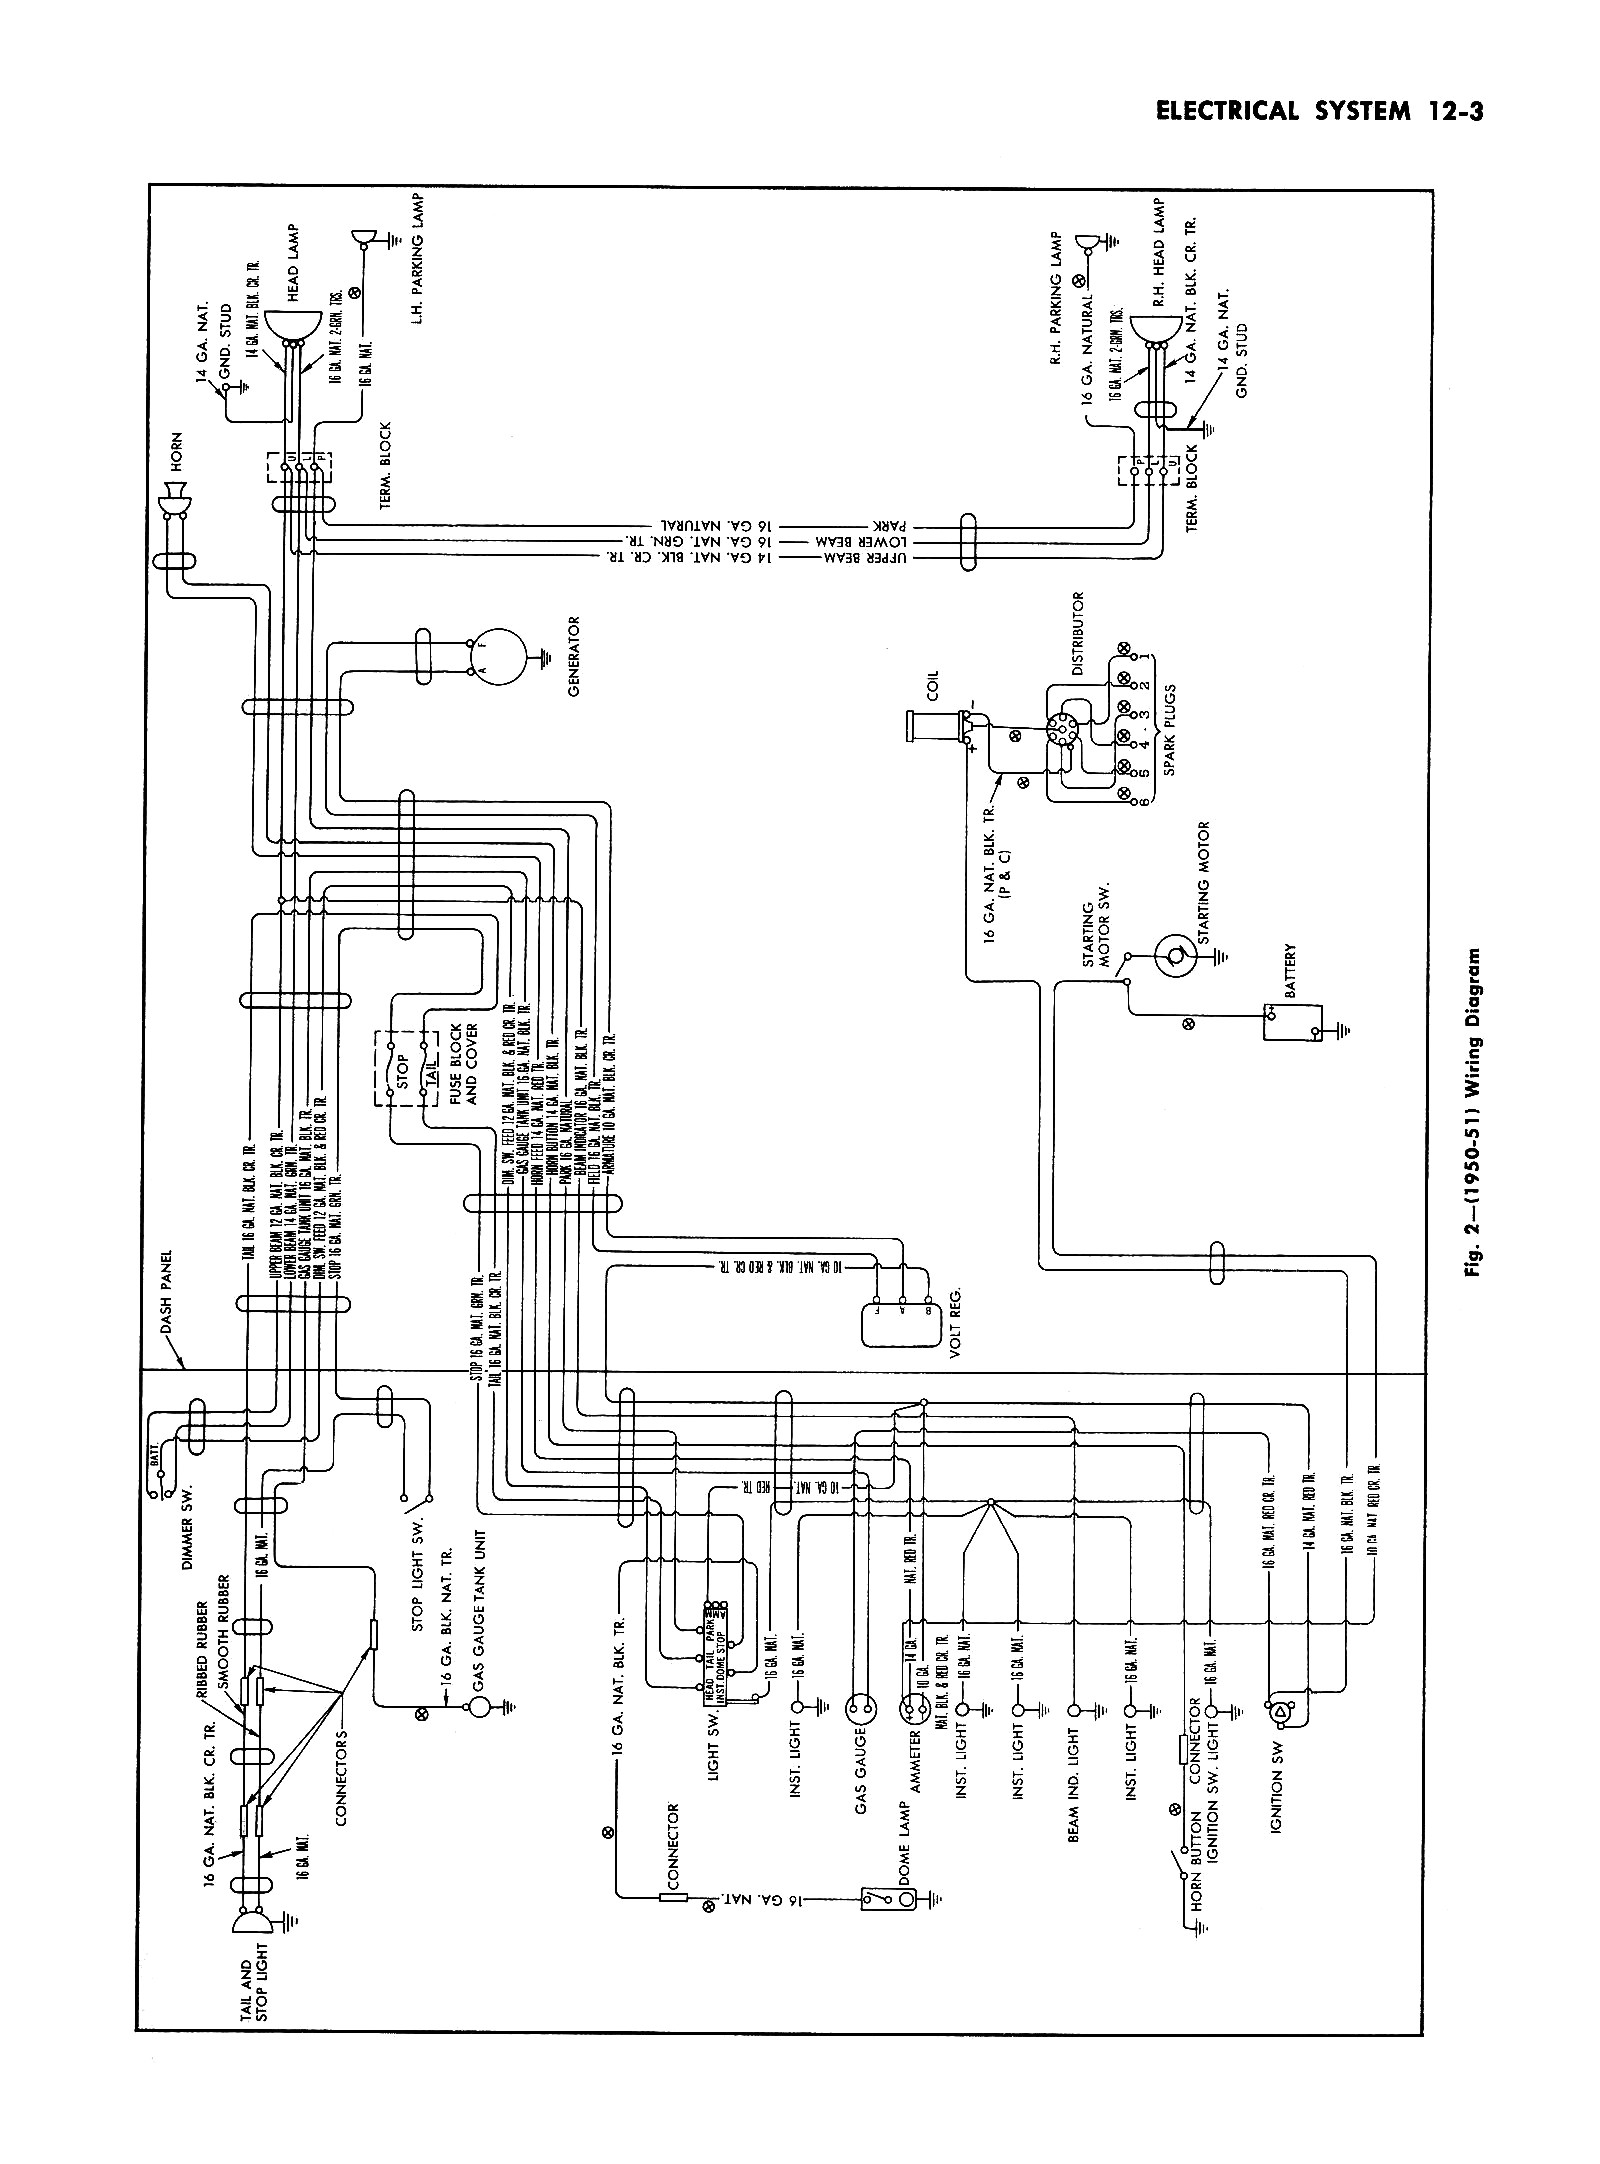 1941 buick wiring harness diagram data schema1939 buick vacuum diagram basic electronics wiring diagram 1941 buick wiring harness